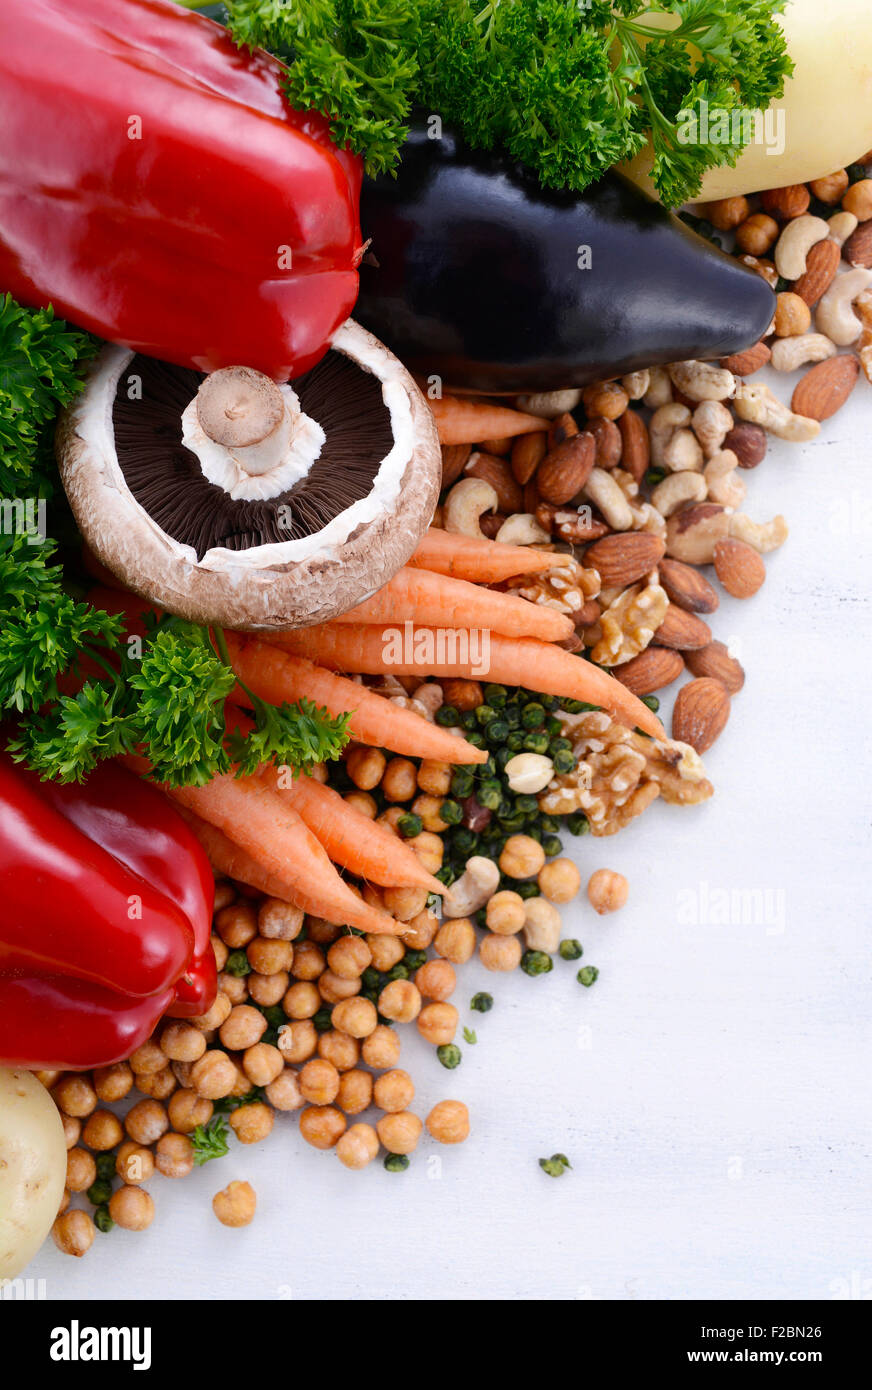 Vegetarian food including vegetables, nuts and legumes with copy space on white background. - Stock Image